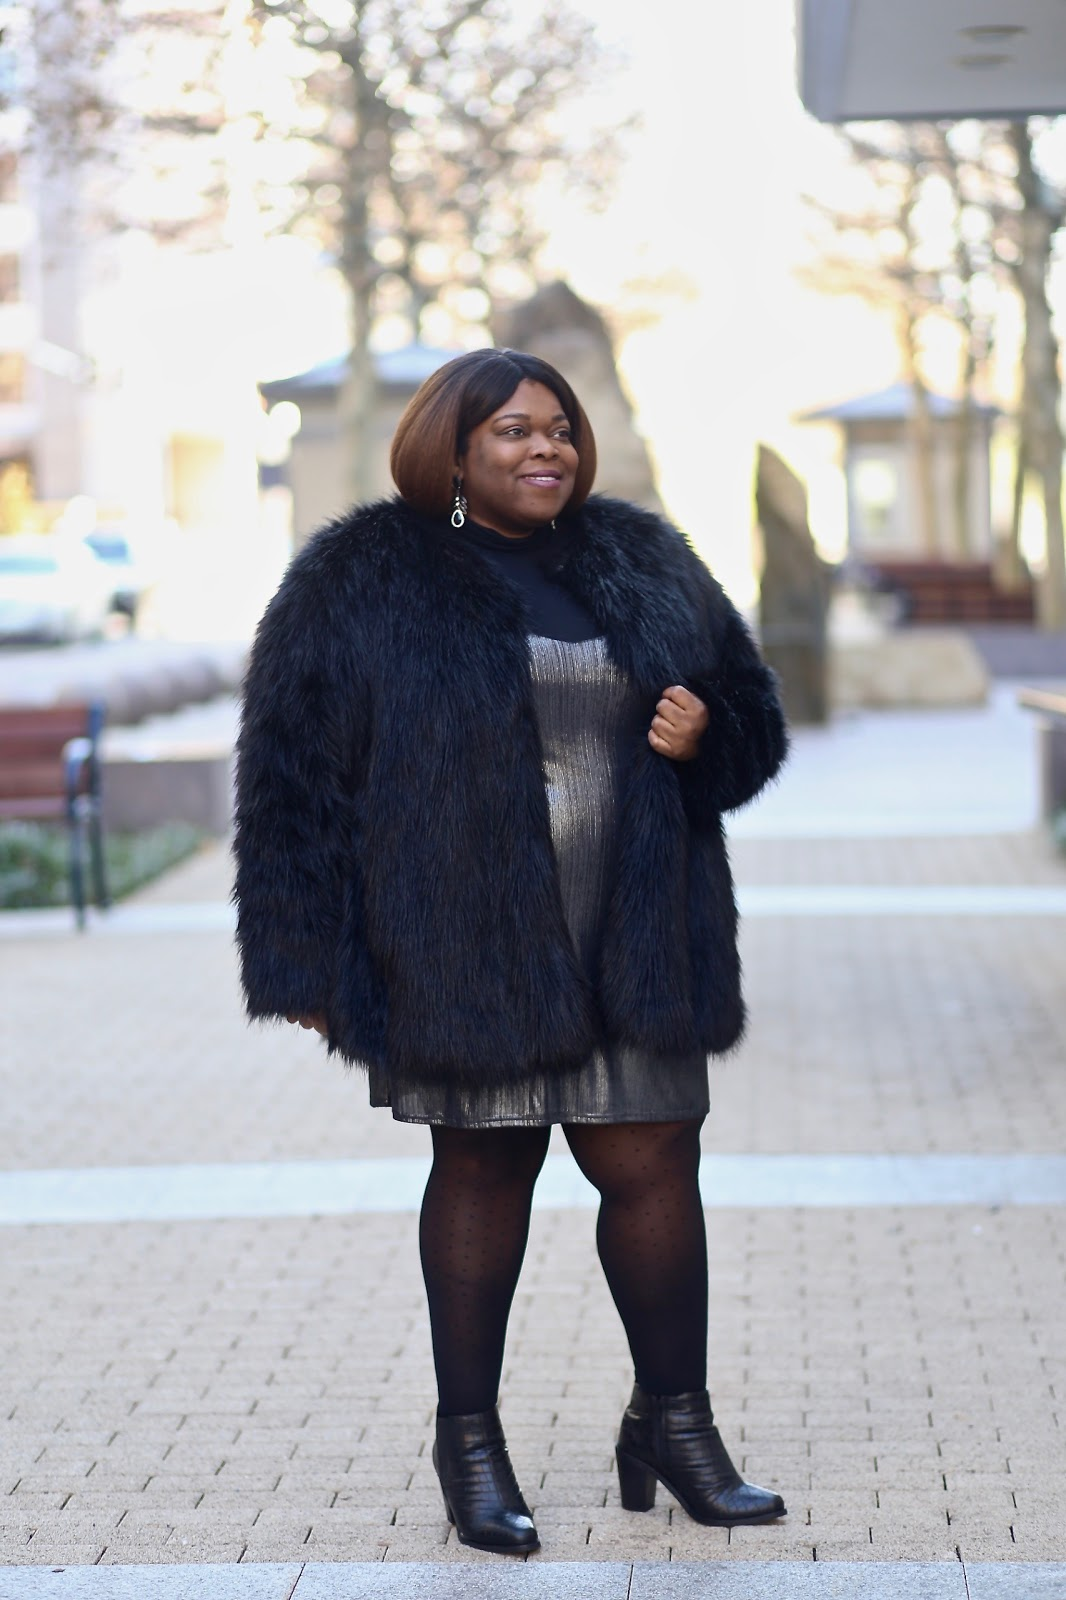 23c4e513567e Holiday Lookbook: LBD + Fashion Tights. Okay, I'm cheating a bit cause  clearly my dress isn't LBD.